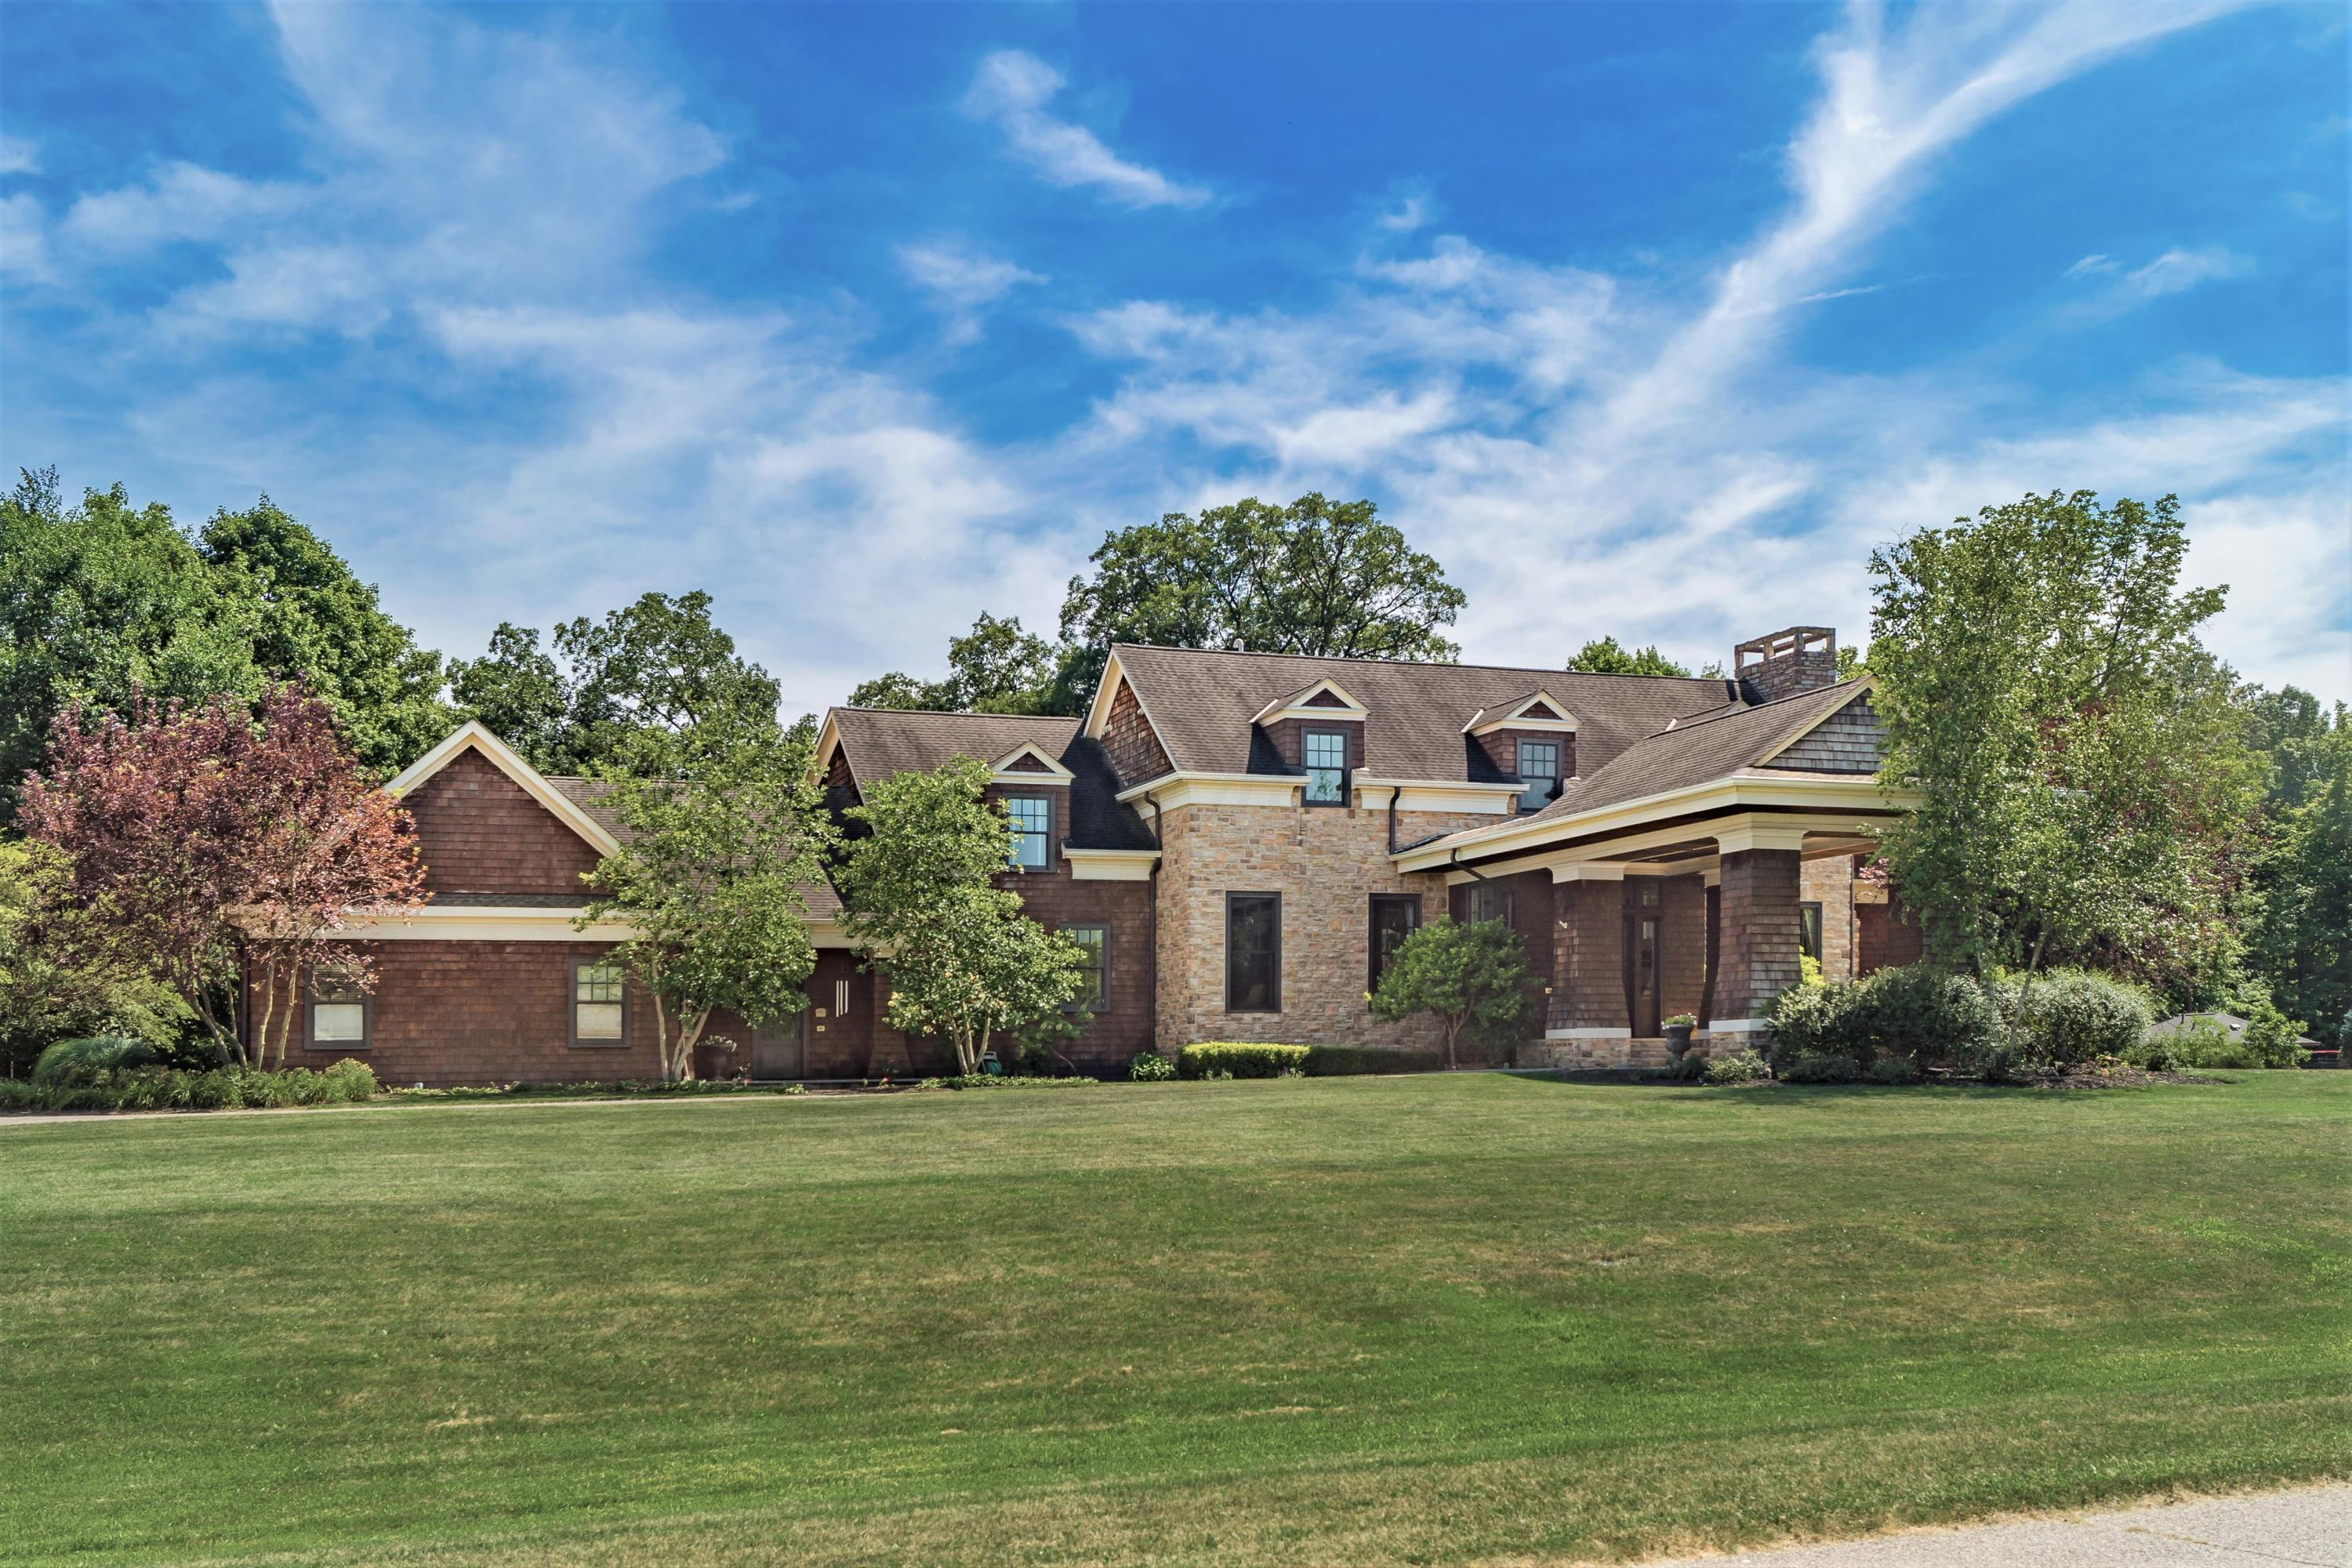 1795 Riverstone Drive, Delaware, Ohio 43015, 4 Bedrooms Bedrooms, ,6 BathroomsBathrooms,Residential,For Sale,Riverstone,220002994